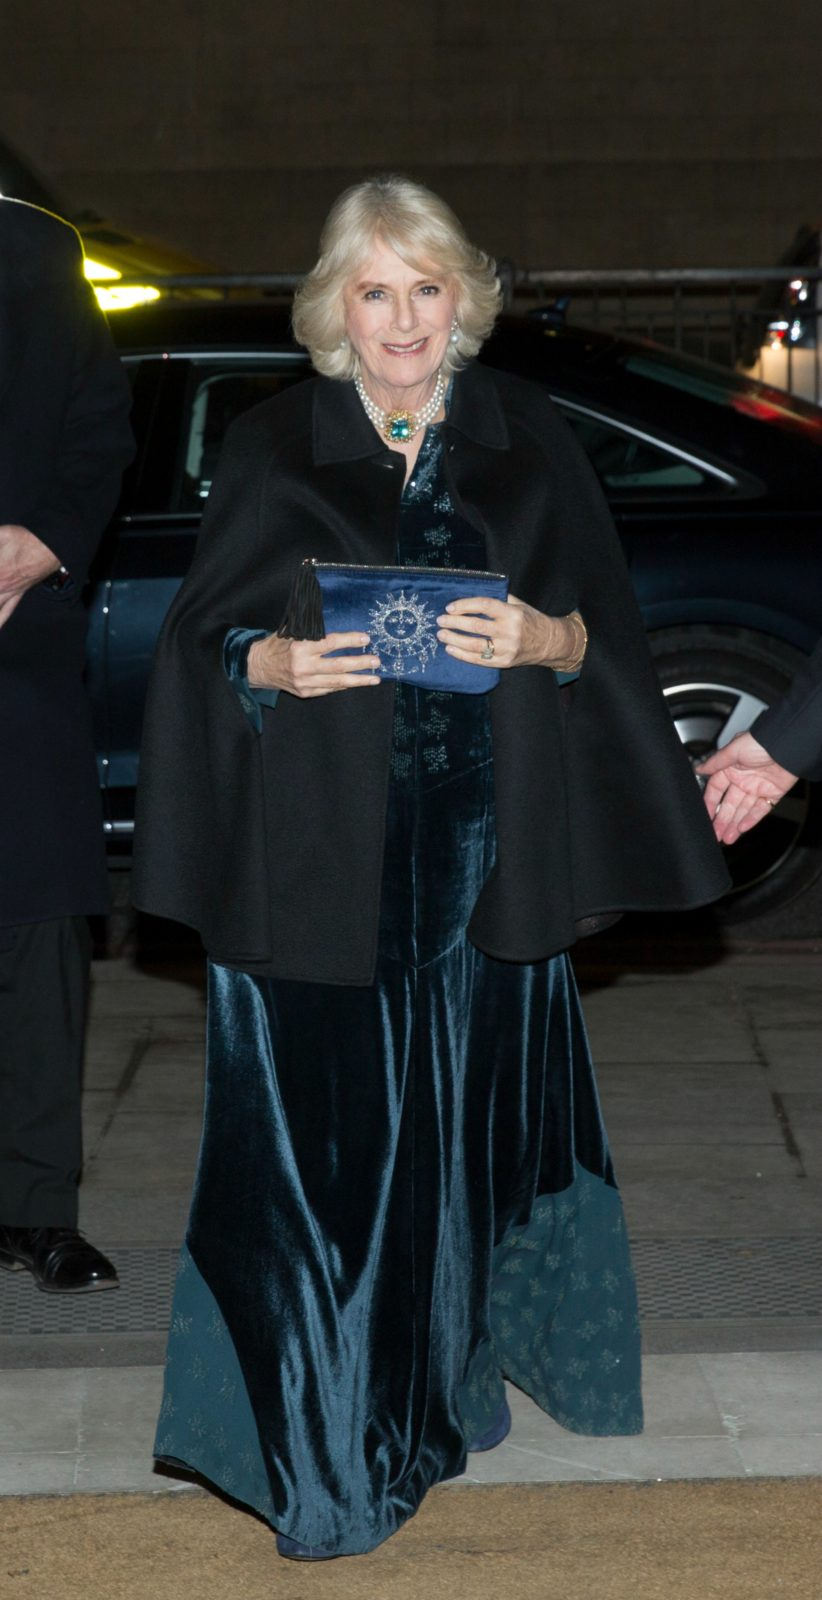 Camilla, Duchess of Cornwall, stepped out in a gorgeous blue velvet gown to attend a dinner for the English & Welsh wine industry in London on Thursday night. Source: Getty